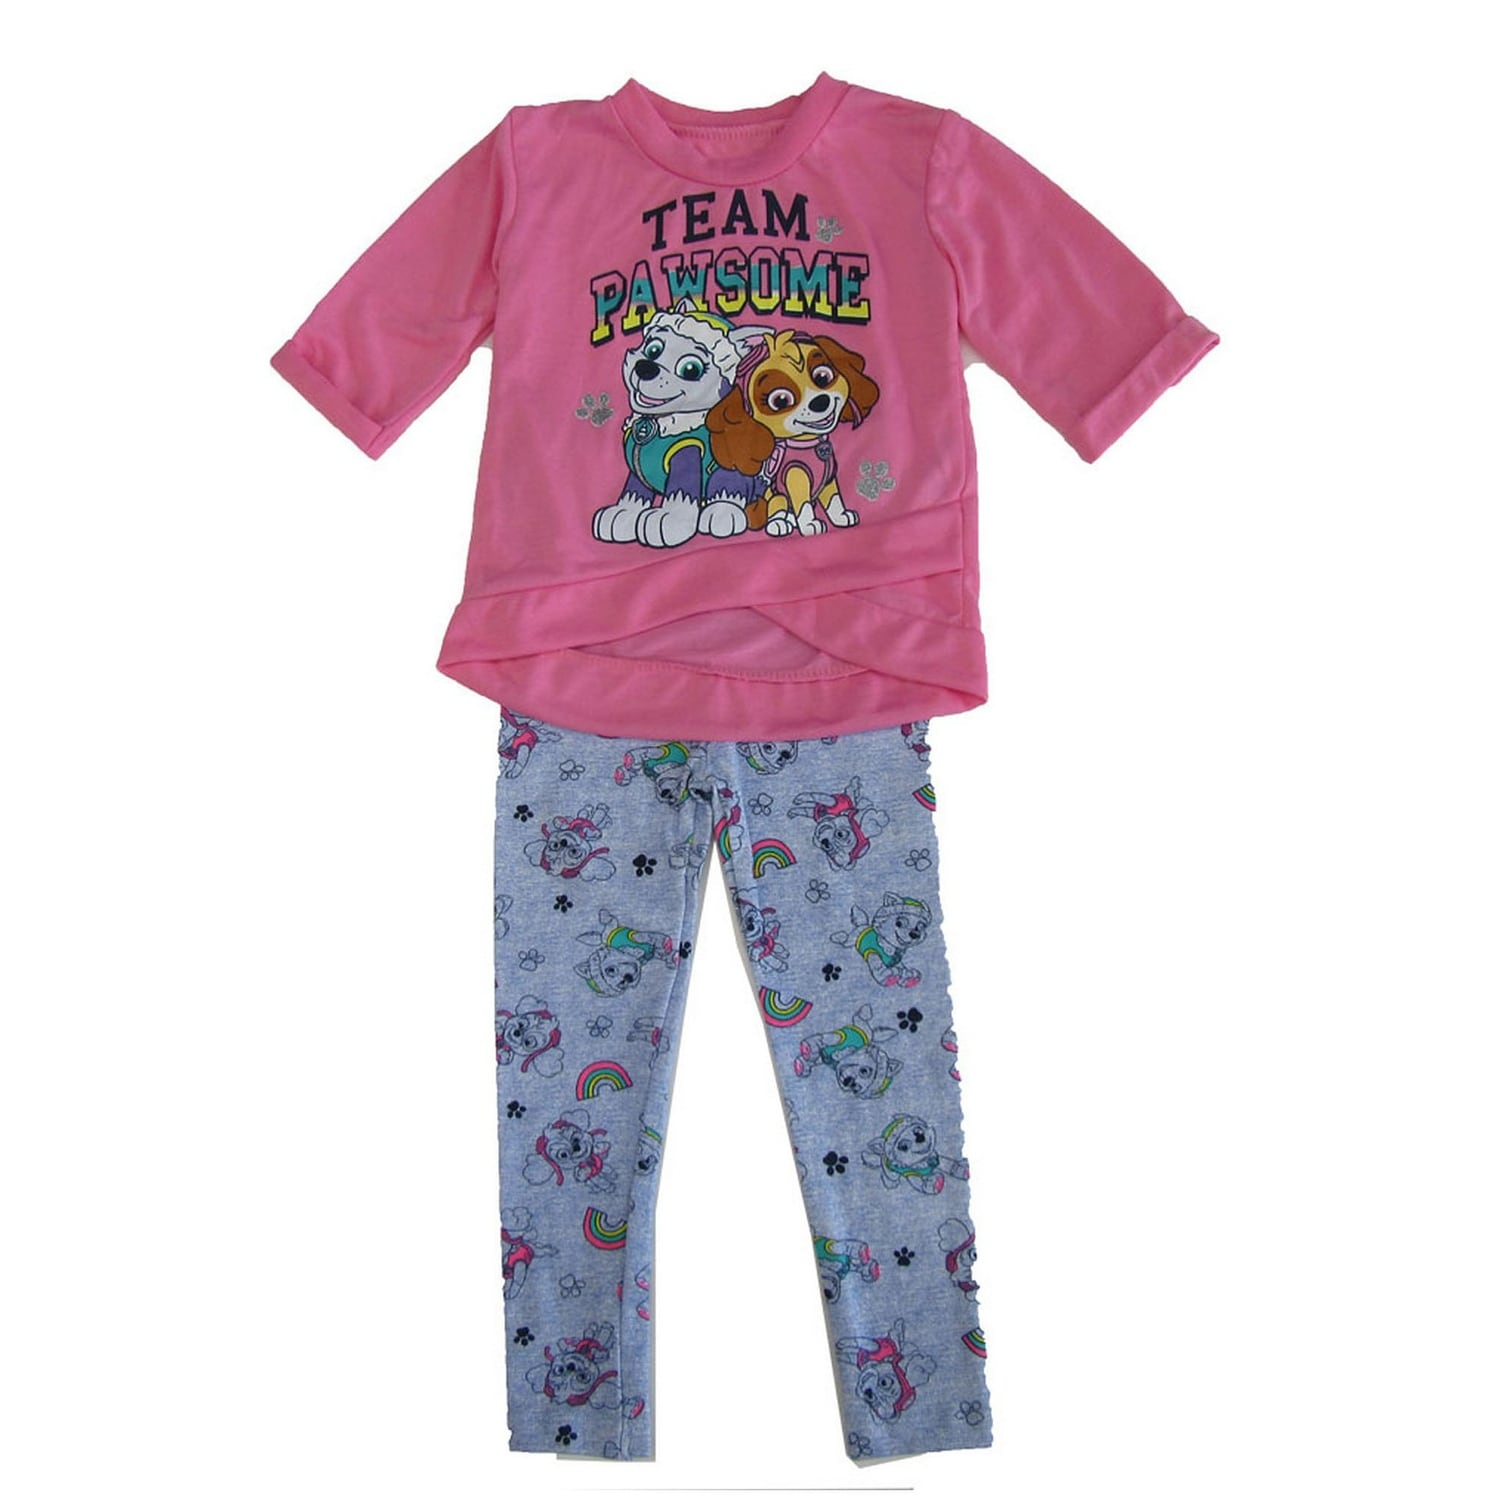 0dcf526fc3823 Nickelodeon Girls' Clothing | Find Great Children's Clothing Deals Shopping  at Overstock